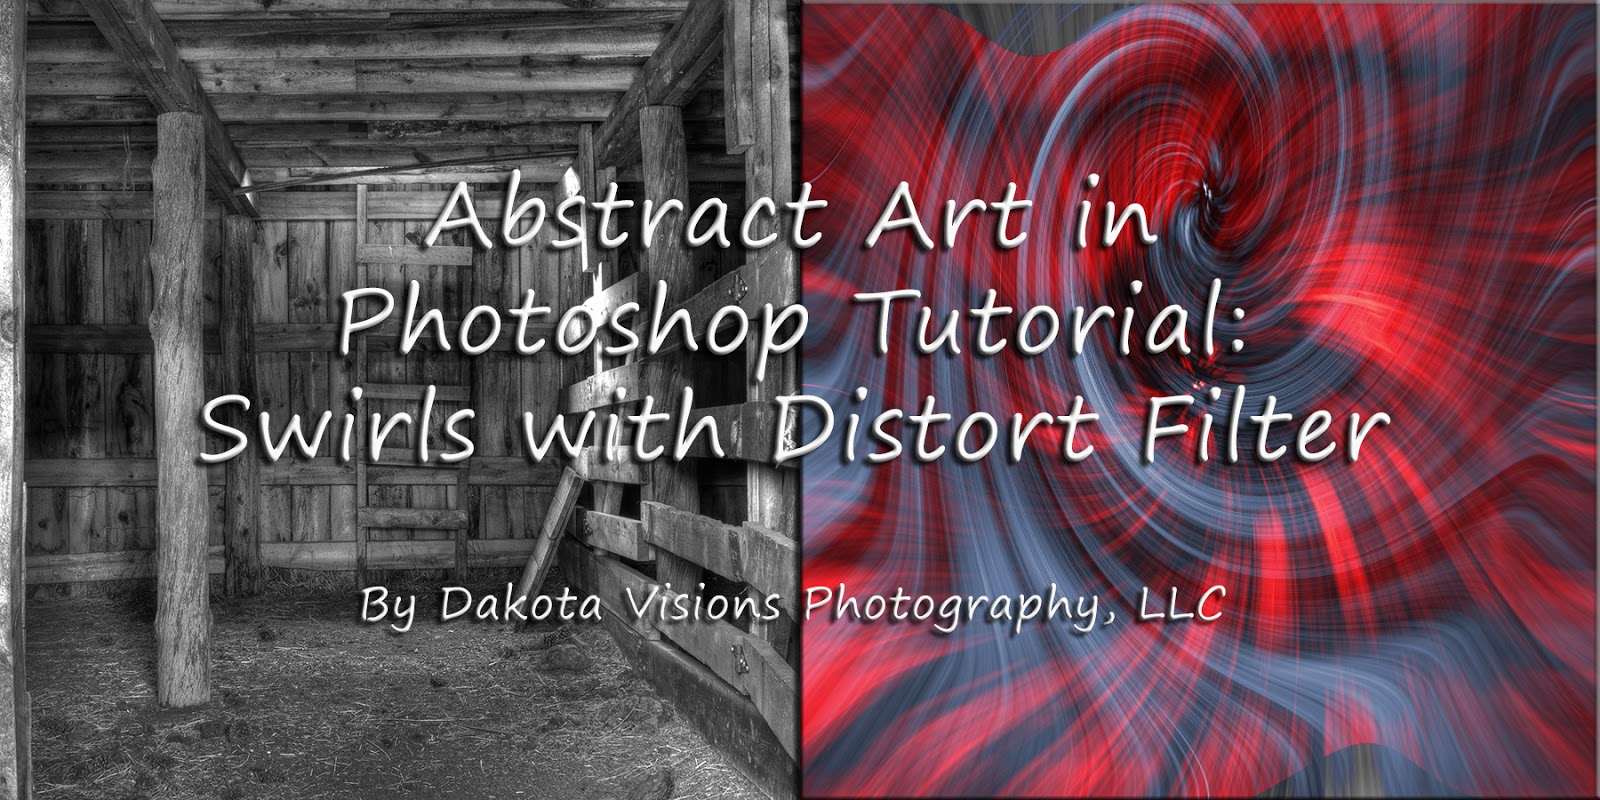 See You Behind the Lens    : Abstract Art in Photoshop